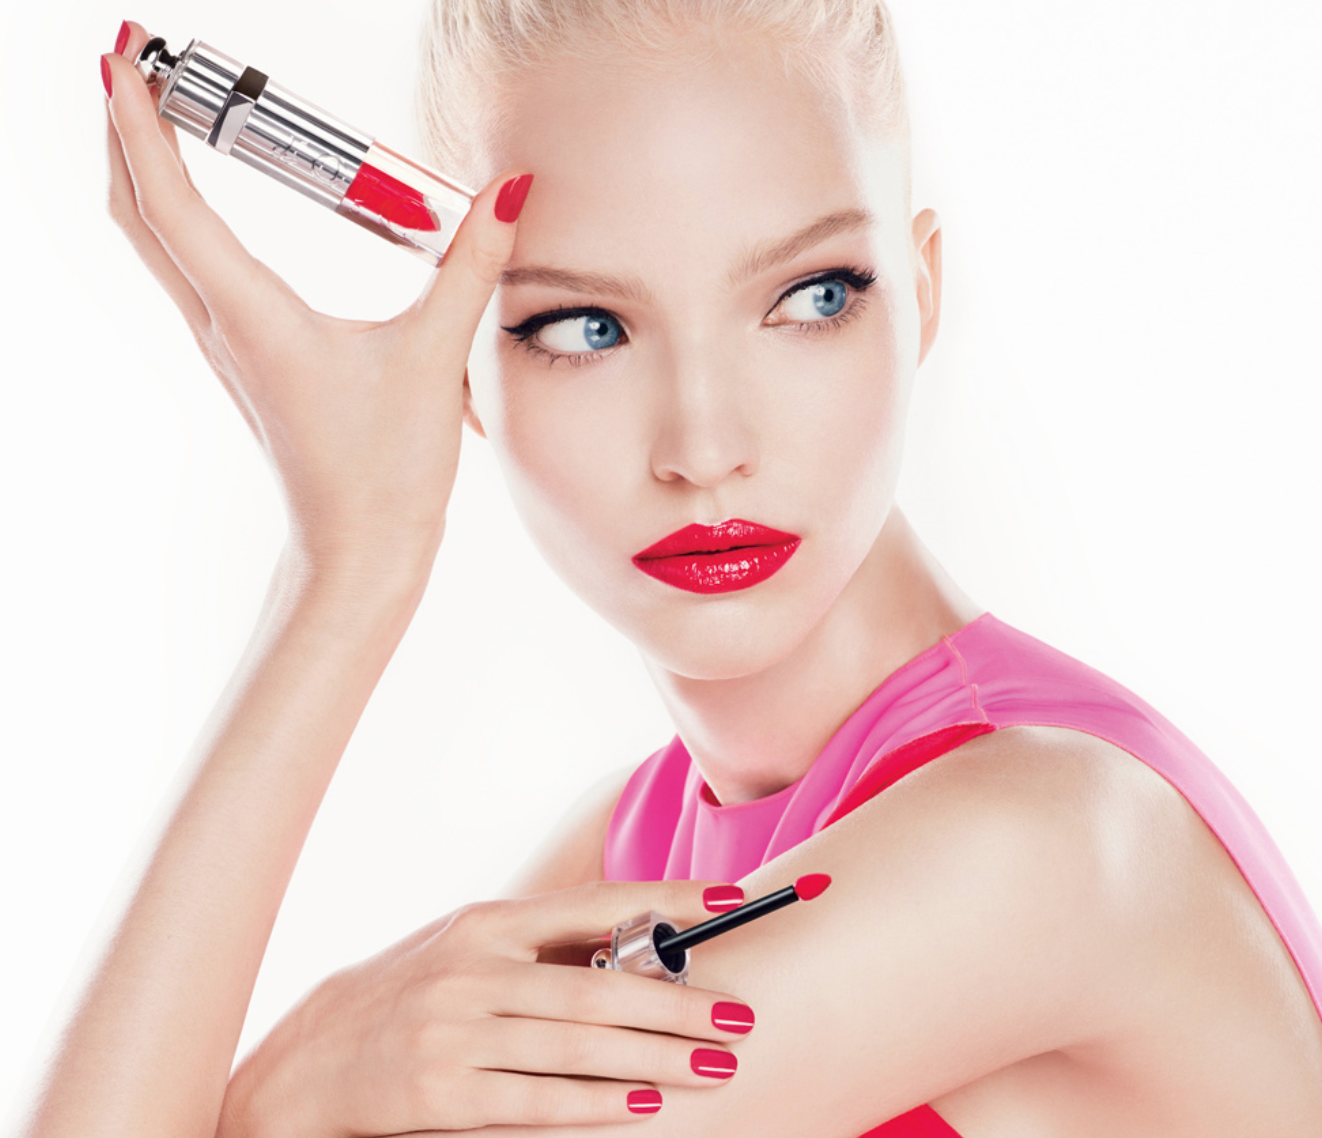 Sasha Luss by Steven Meisel for Dior Addict Beauty S/S 2014